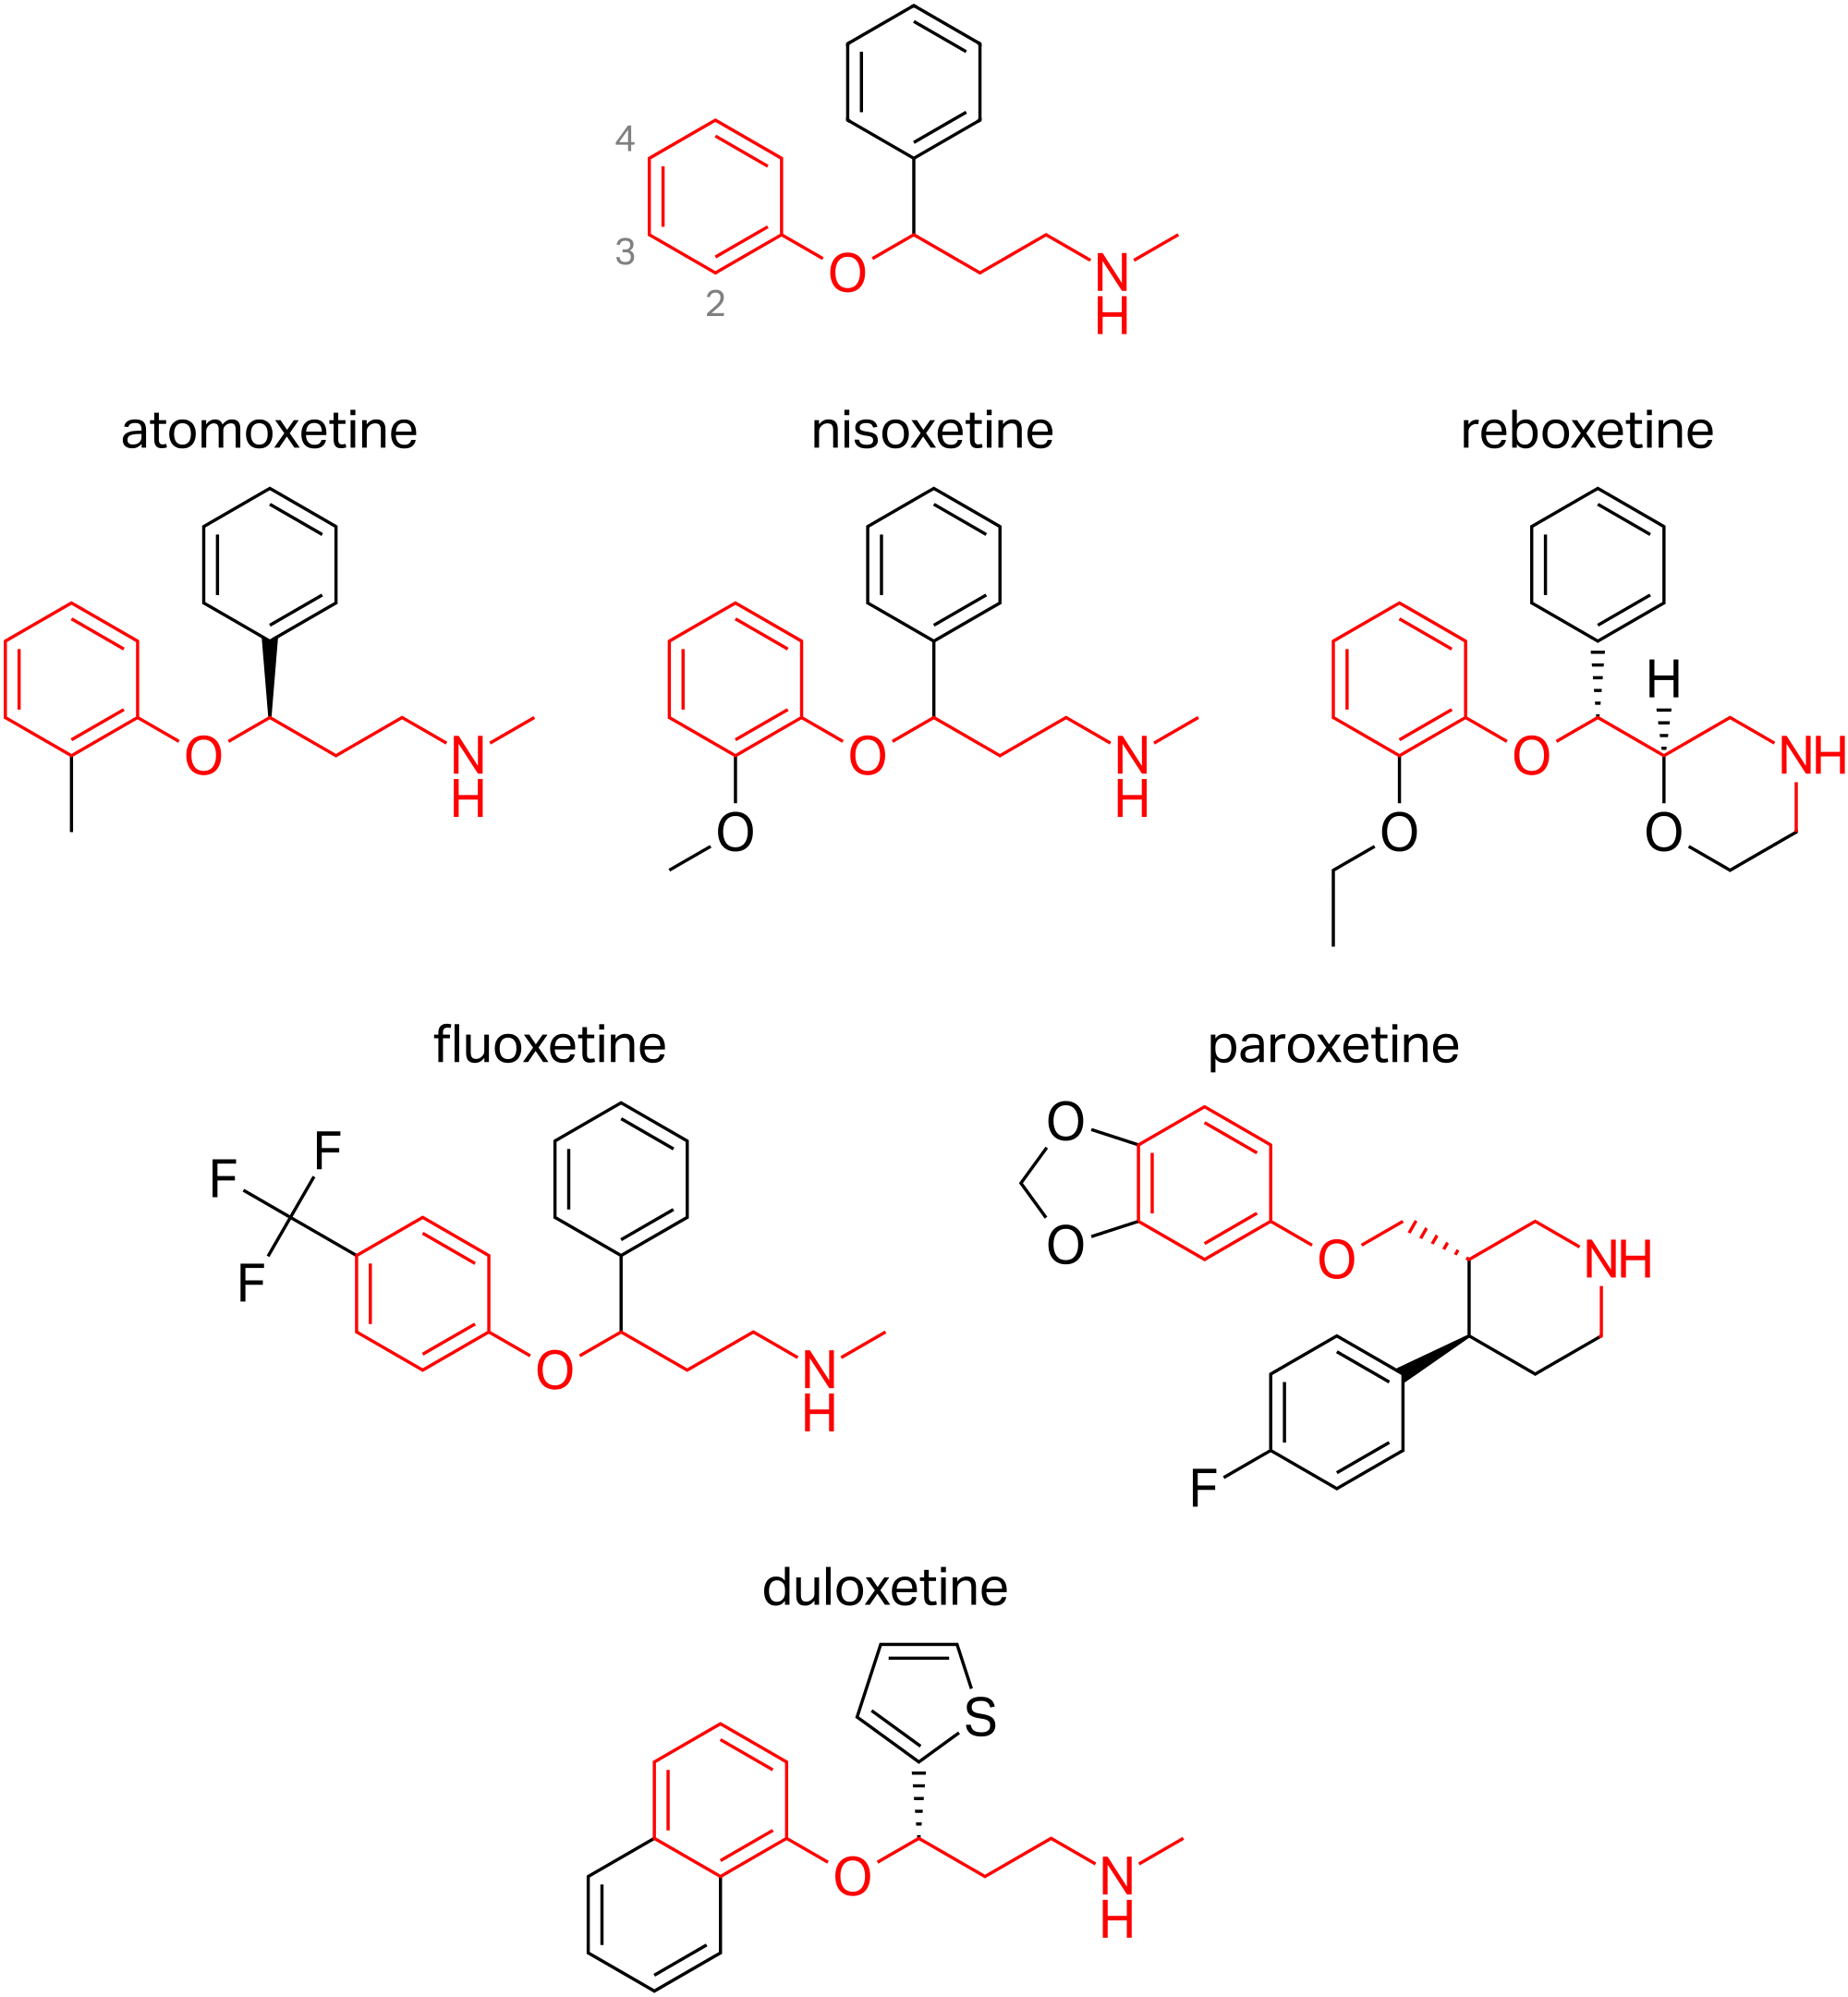 Aryloxypropanamine scaffold and agents containing it